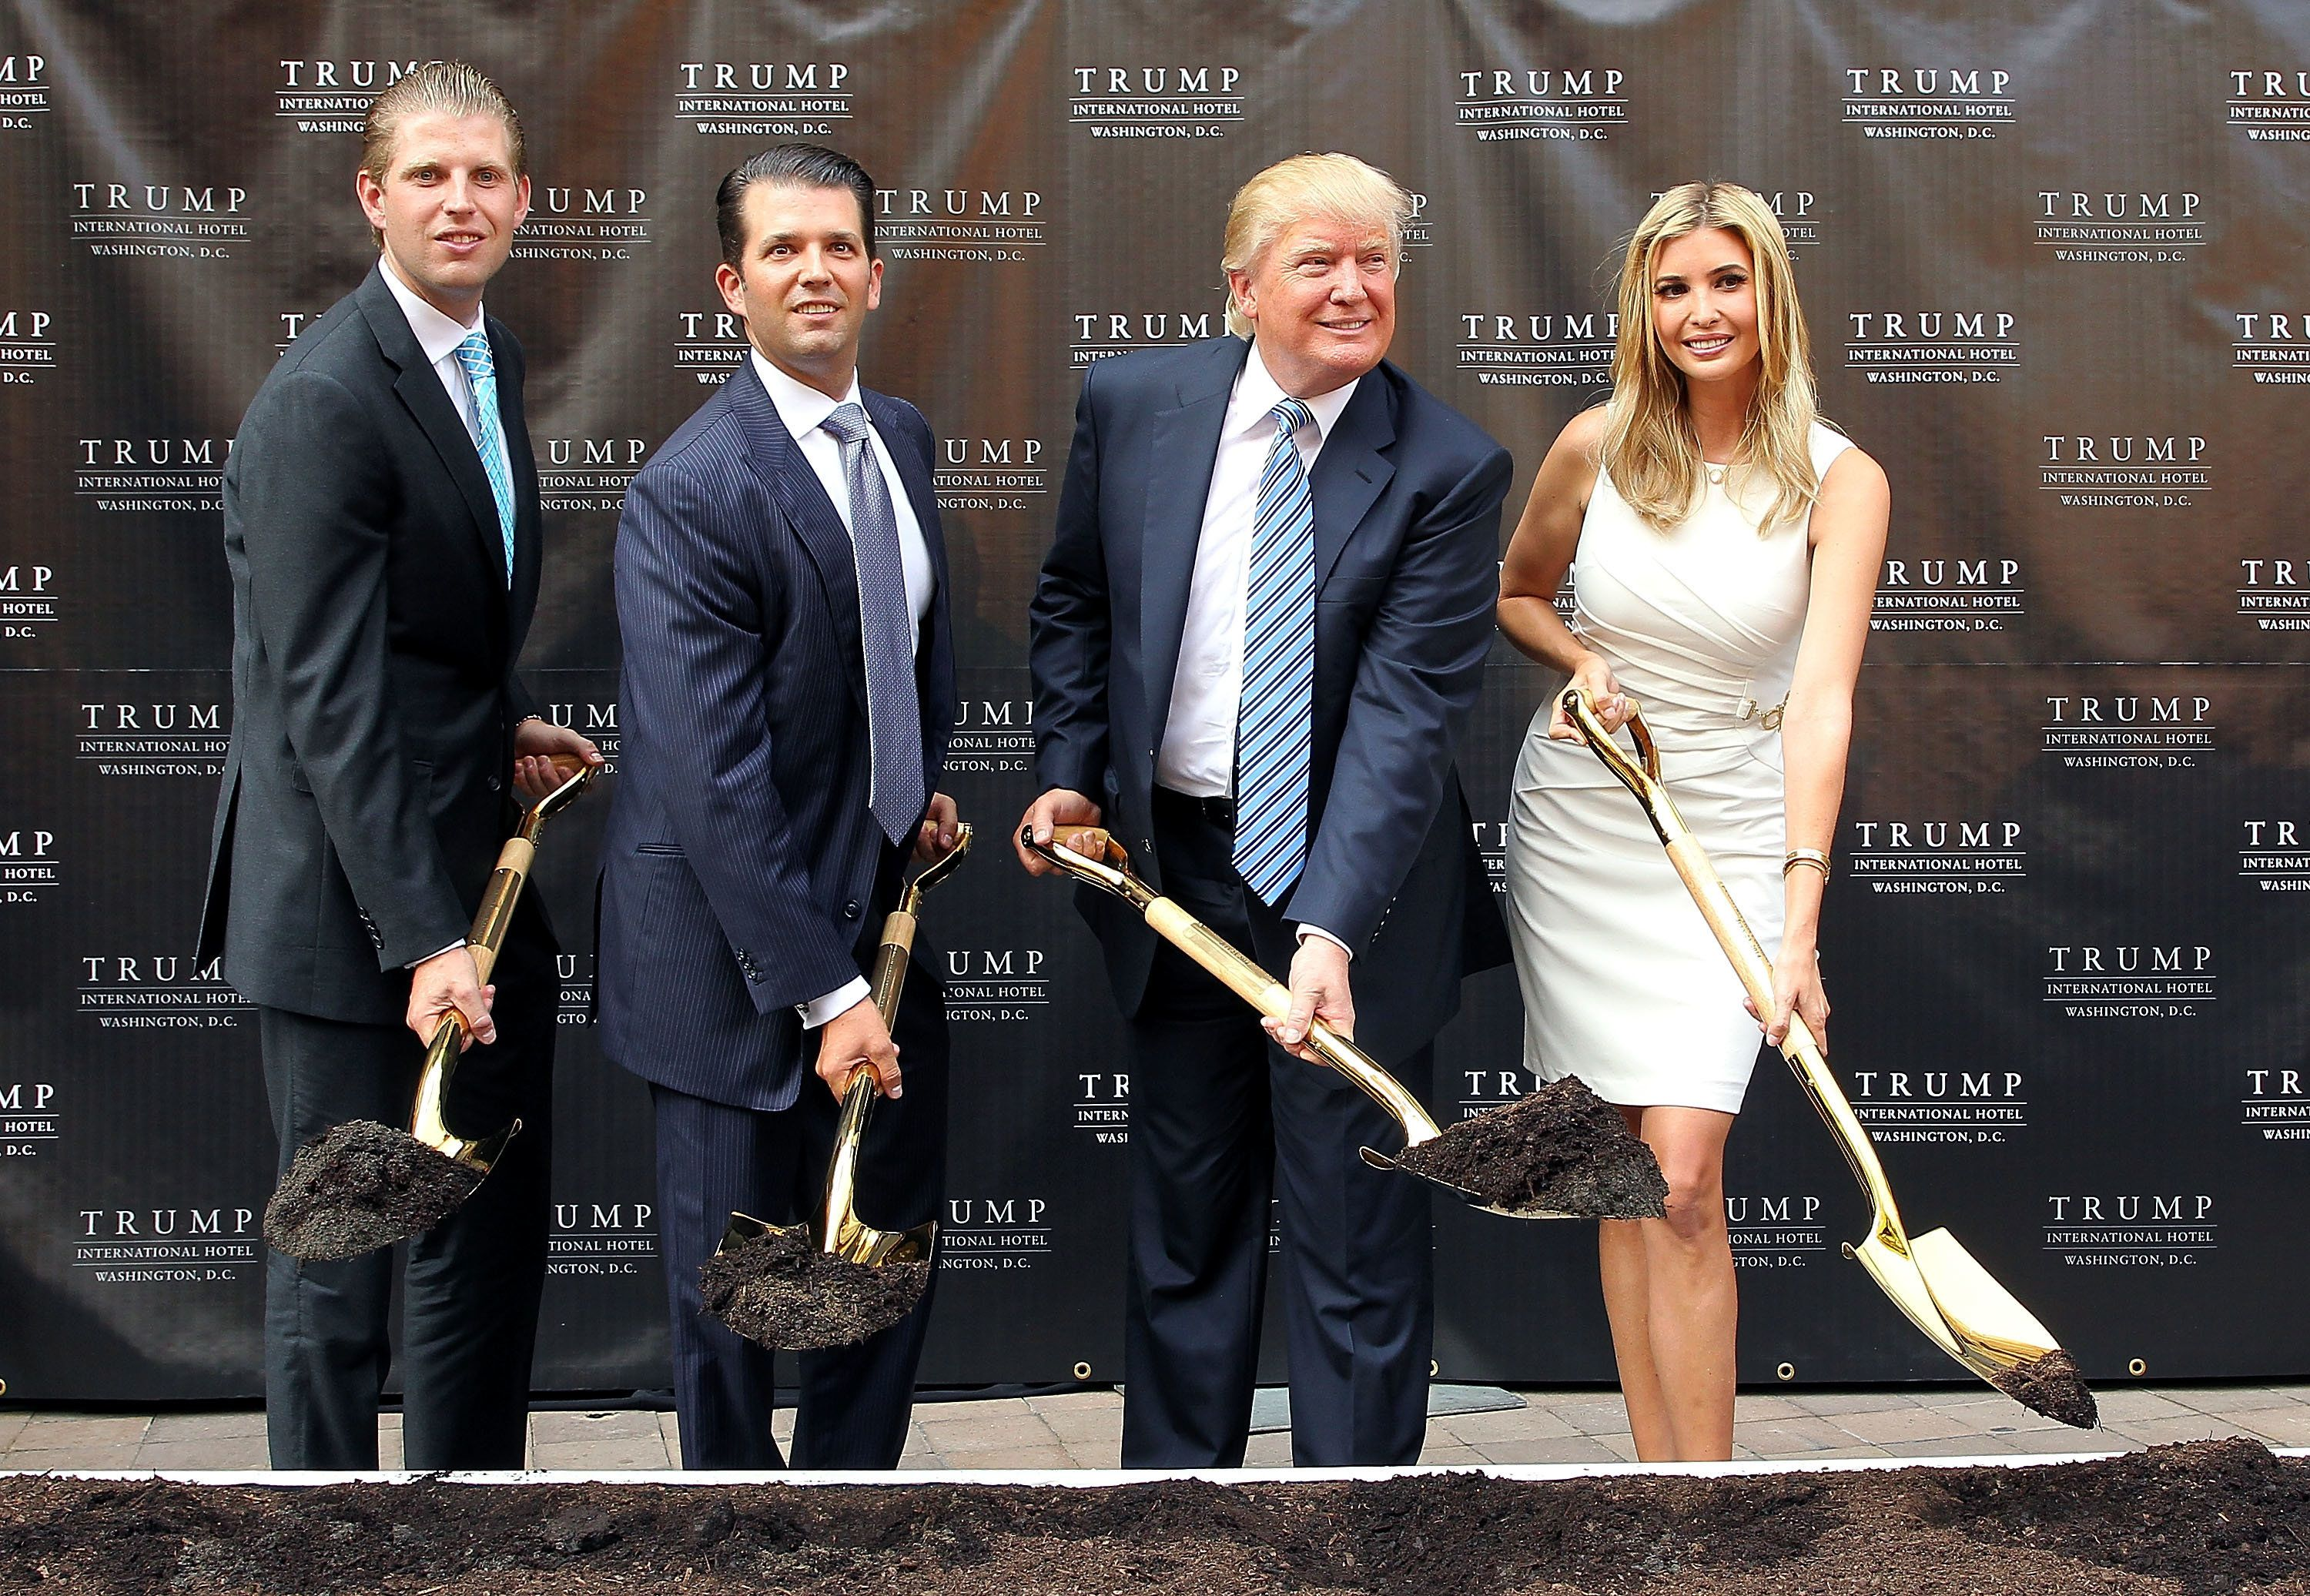 WASHINGTON, DC - JULY 23:  Trump family members (L to R) Eric Trump, Donald Trump Jr., Donald  Trump and Ivanka Trump break ground at the Trump International Hotel Washington, D.C Groundbreaking Ceremony at Old Post Office on July 23, 2014 in Washington, DC.  (Photo by Paul Morigi/WireImage)